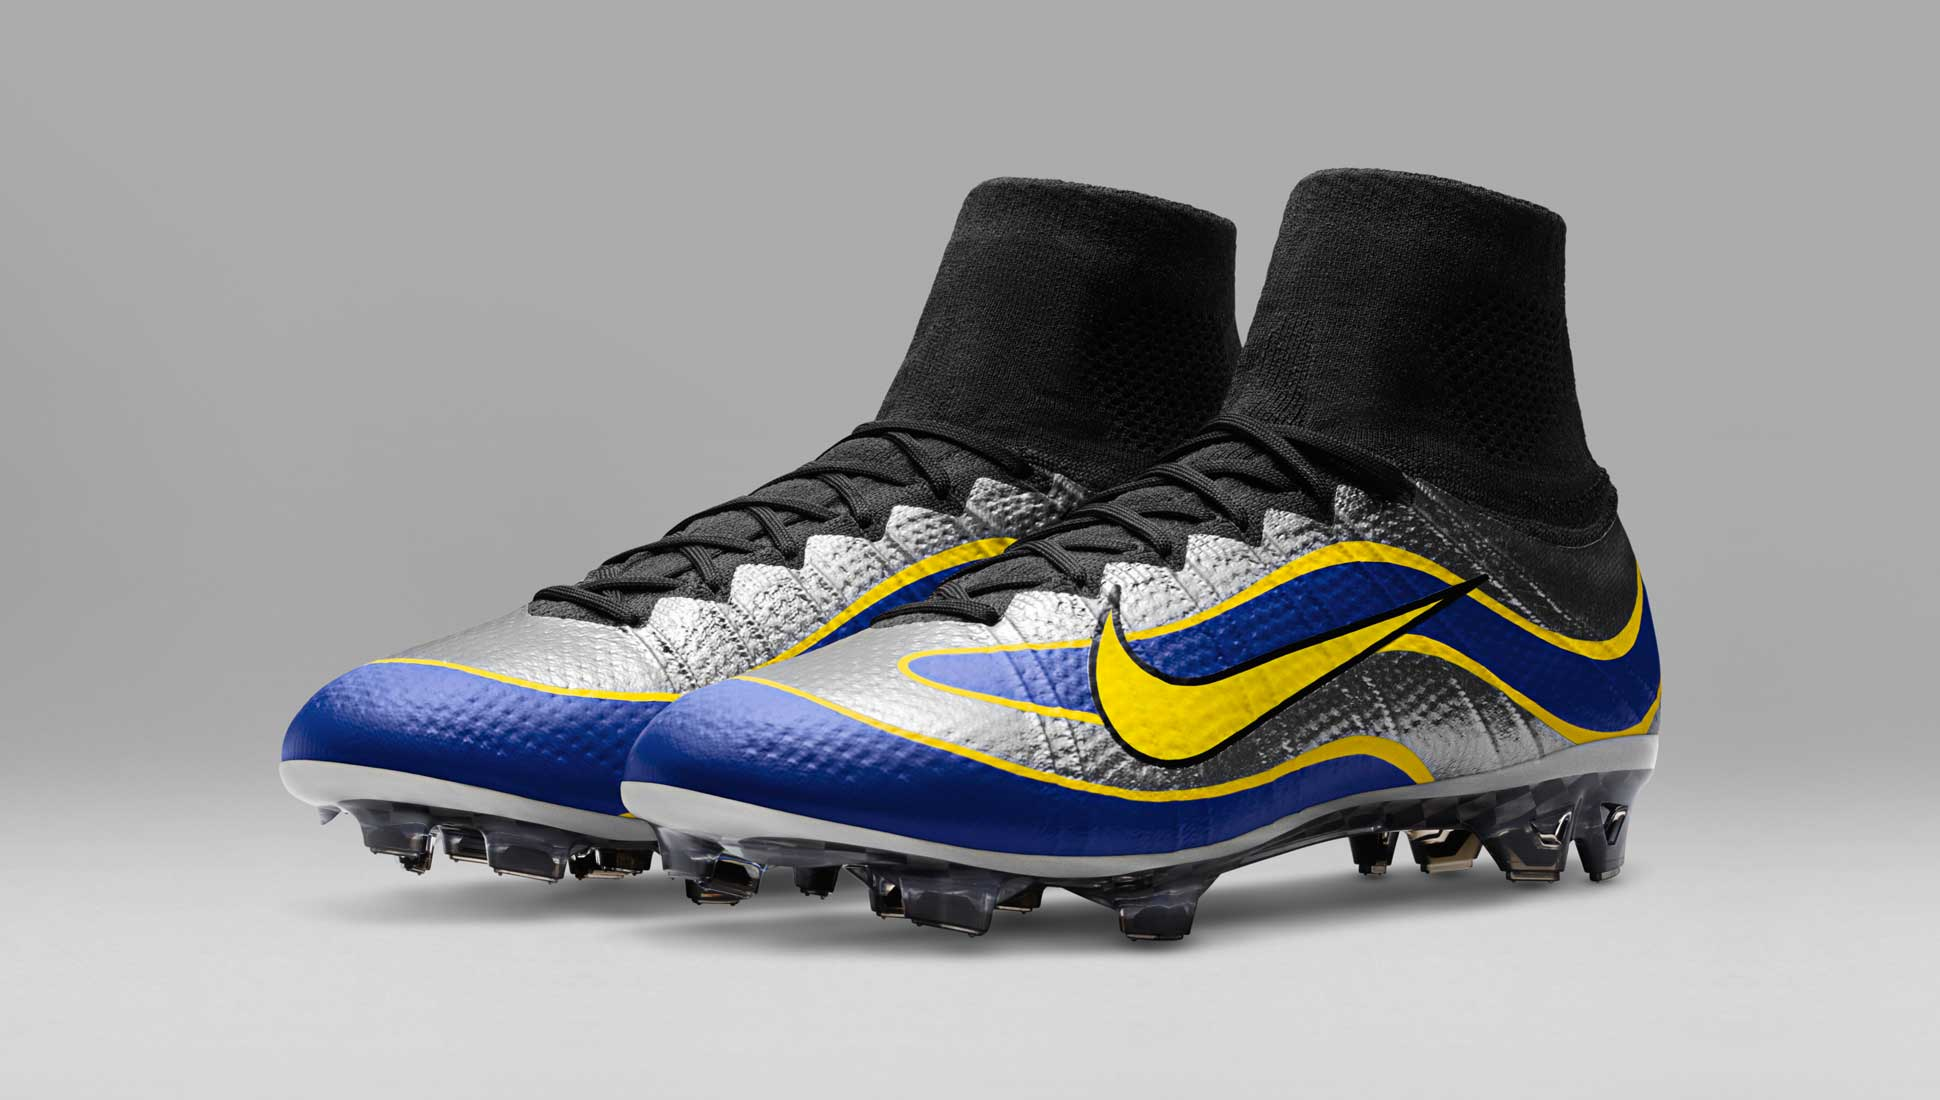 78d044bde Nike Mercurial Superfly Heritage iD - SoccerBible